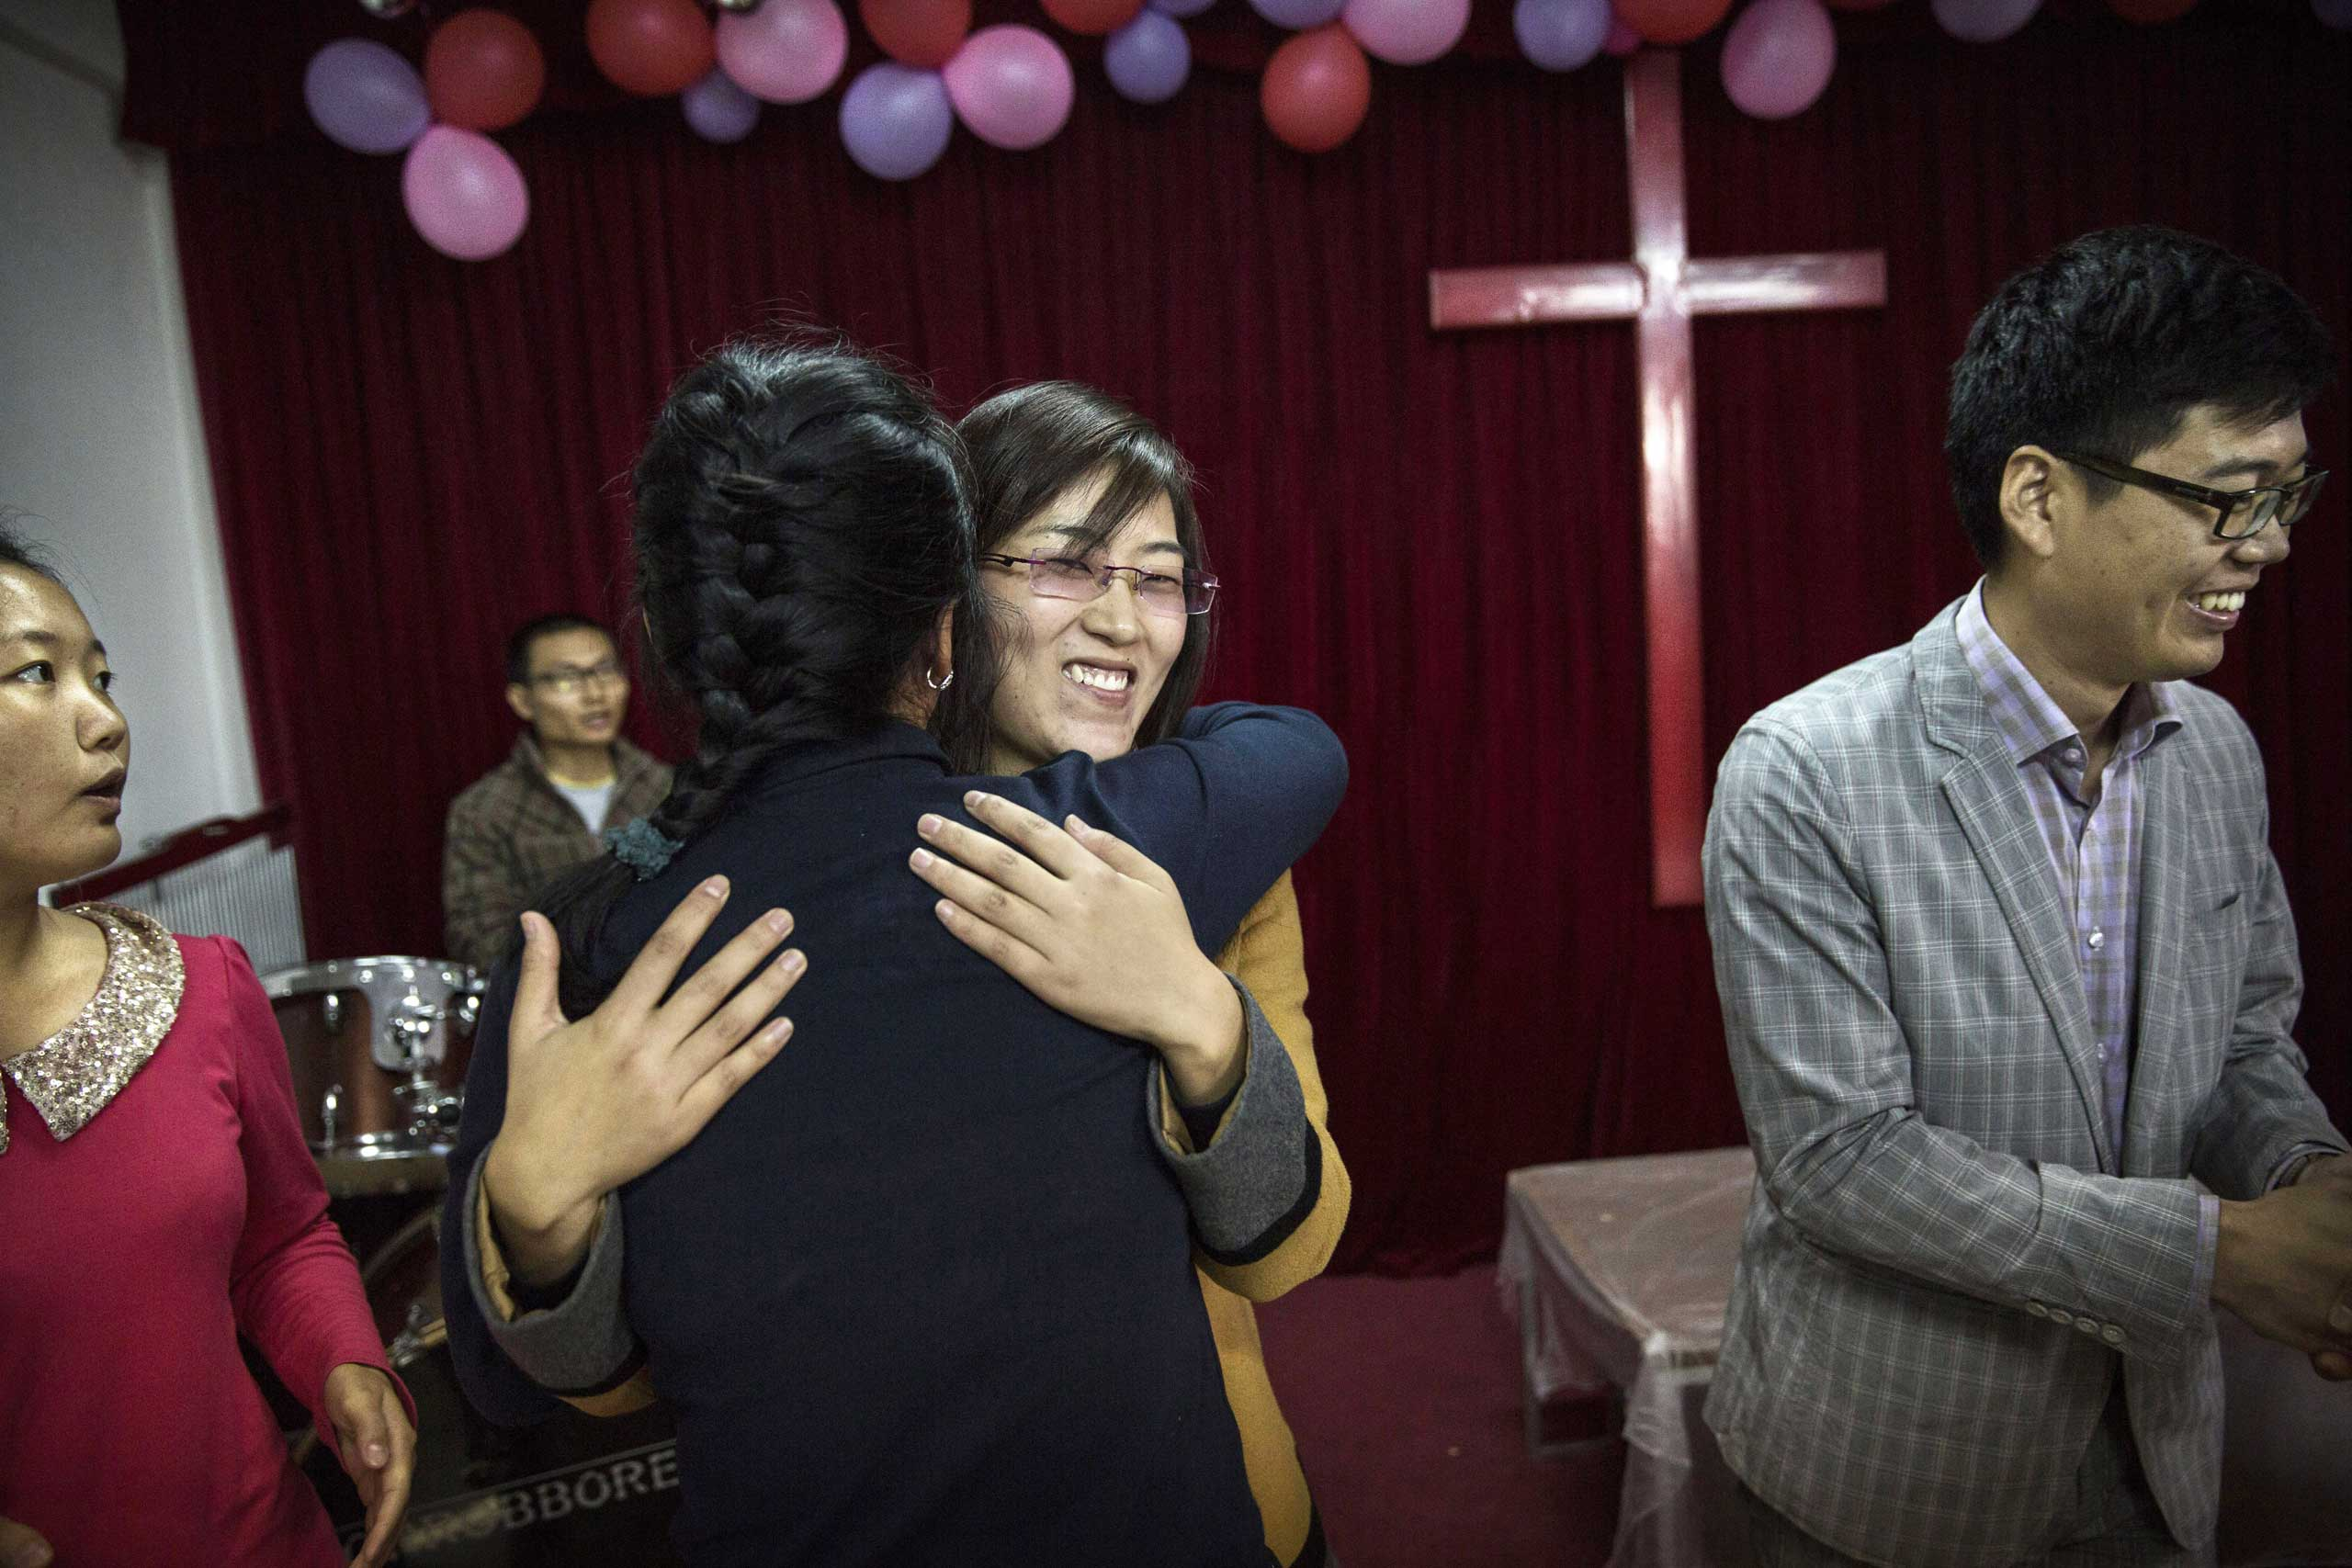 A  woman is embraced by another member of the congregation as she is acknowledged for attending for the first time during a service at an underground independent Protestant Church in Beijing.